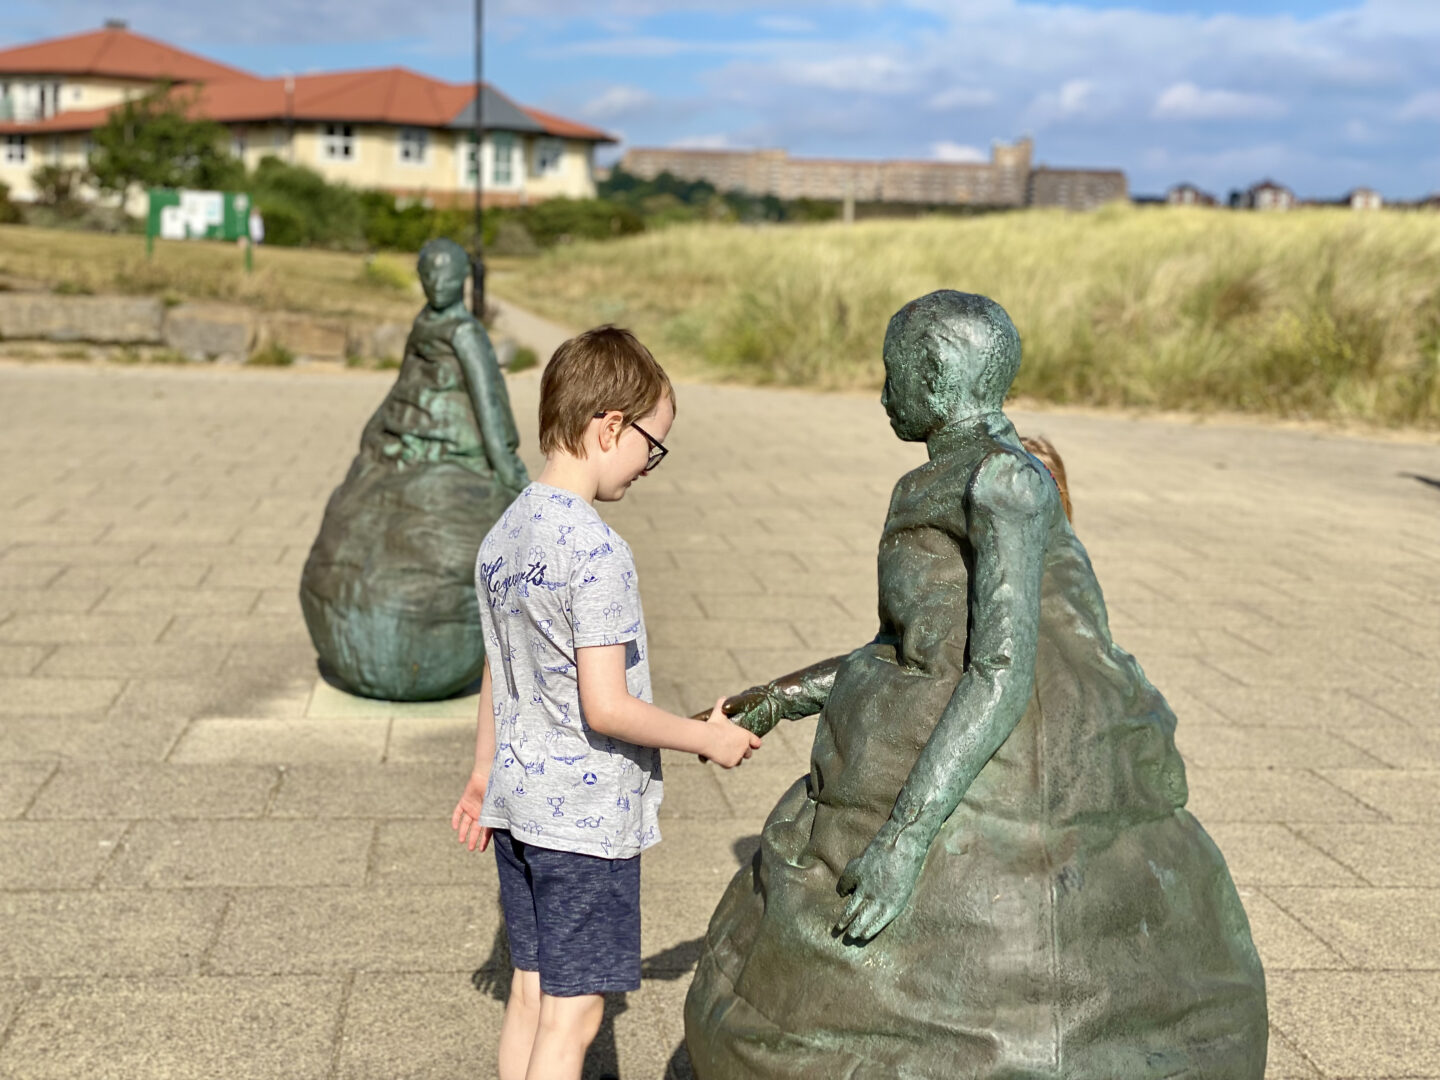 A boy 'shakes hands' with a statue